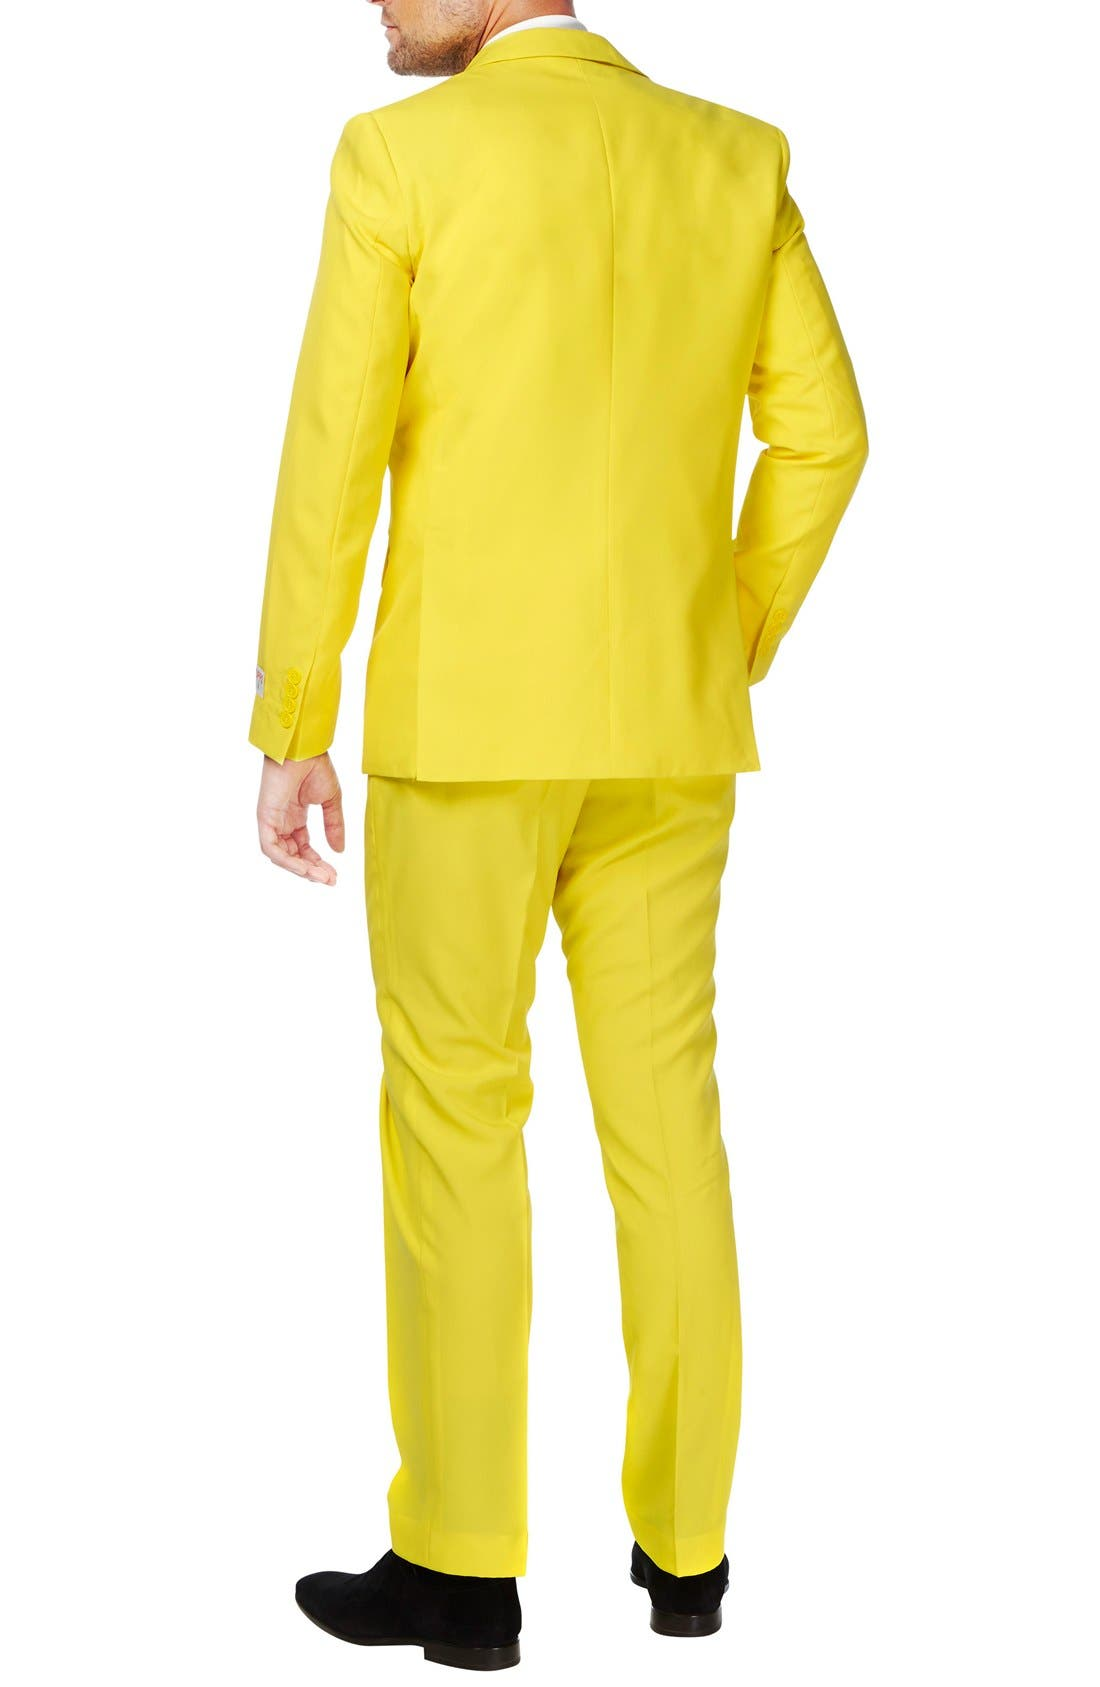 Alternate Image 2  - OppoSuits 'Yellow Fellow' Trim Fit Two-Piece Suit with Tie